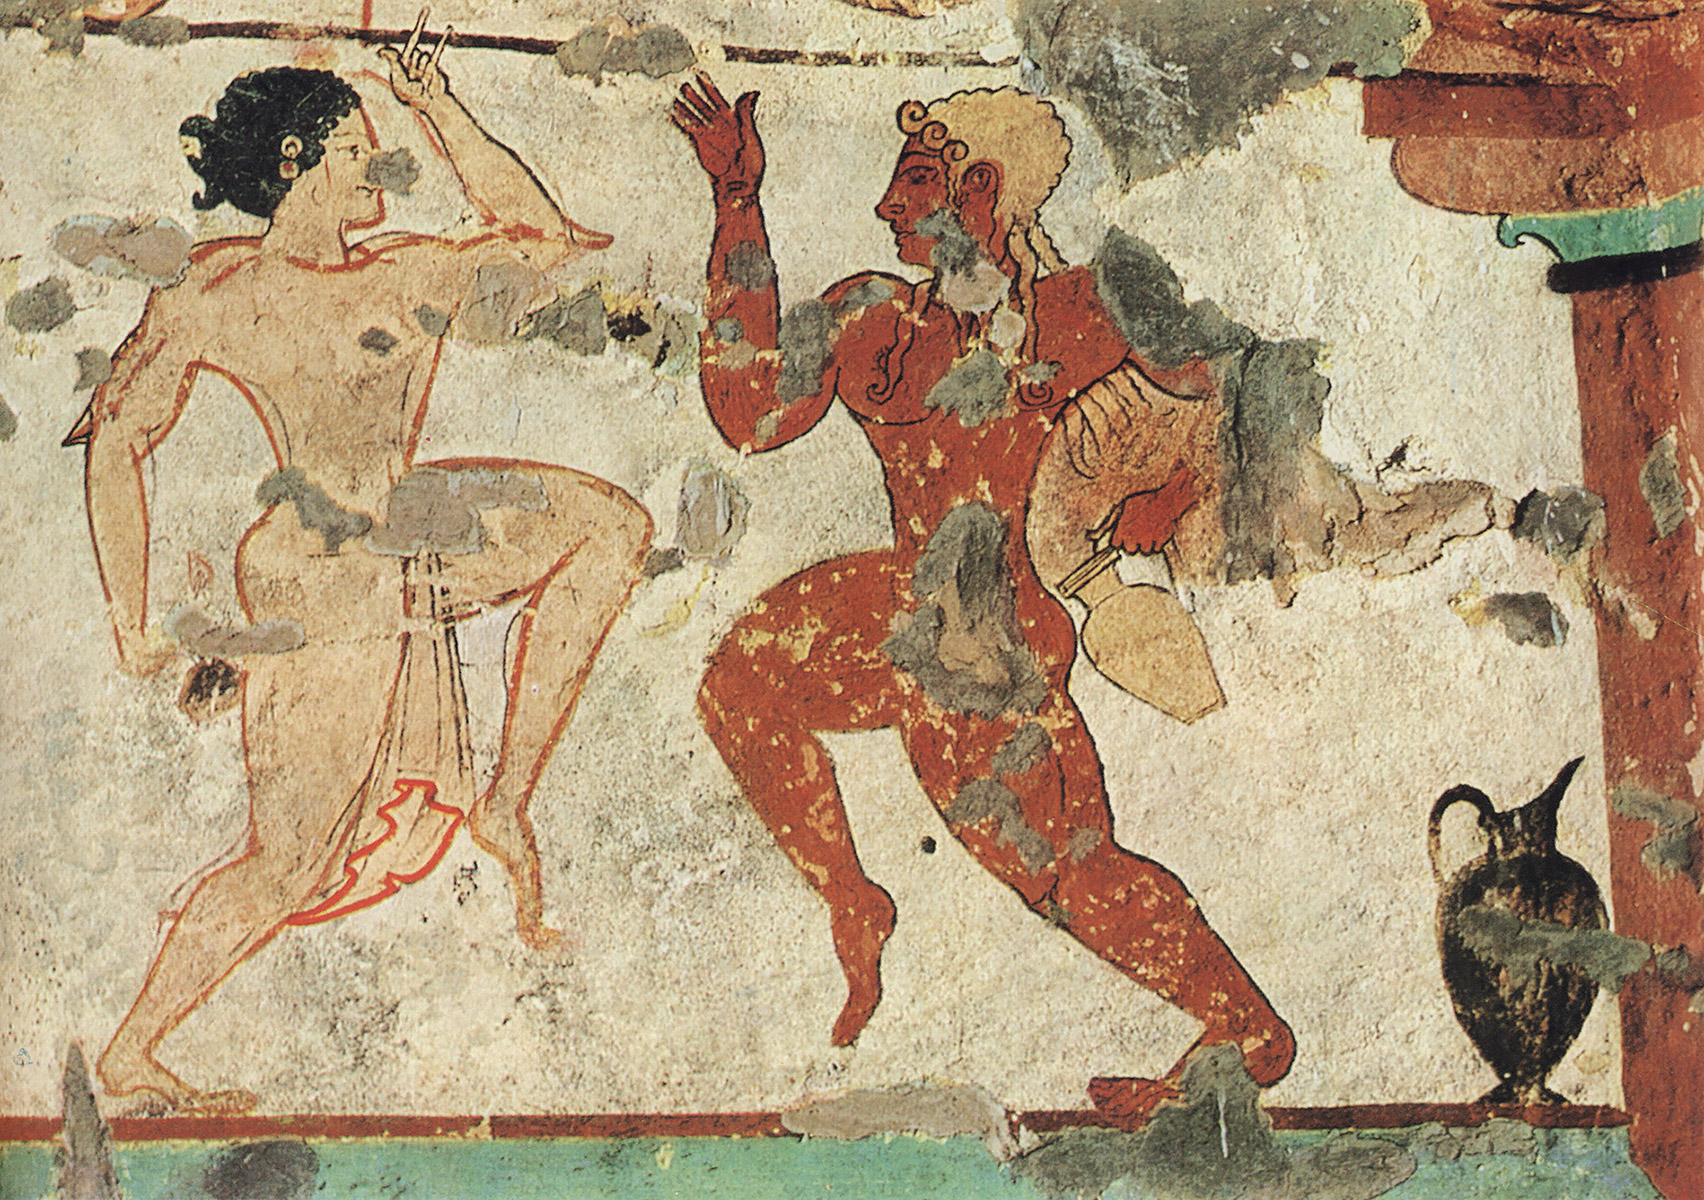 Ritual dance. 6th century BCE. Tarquinia, Tomb of the Lionesses